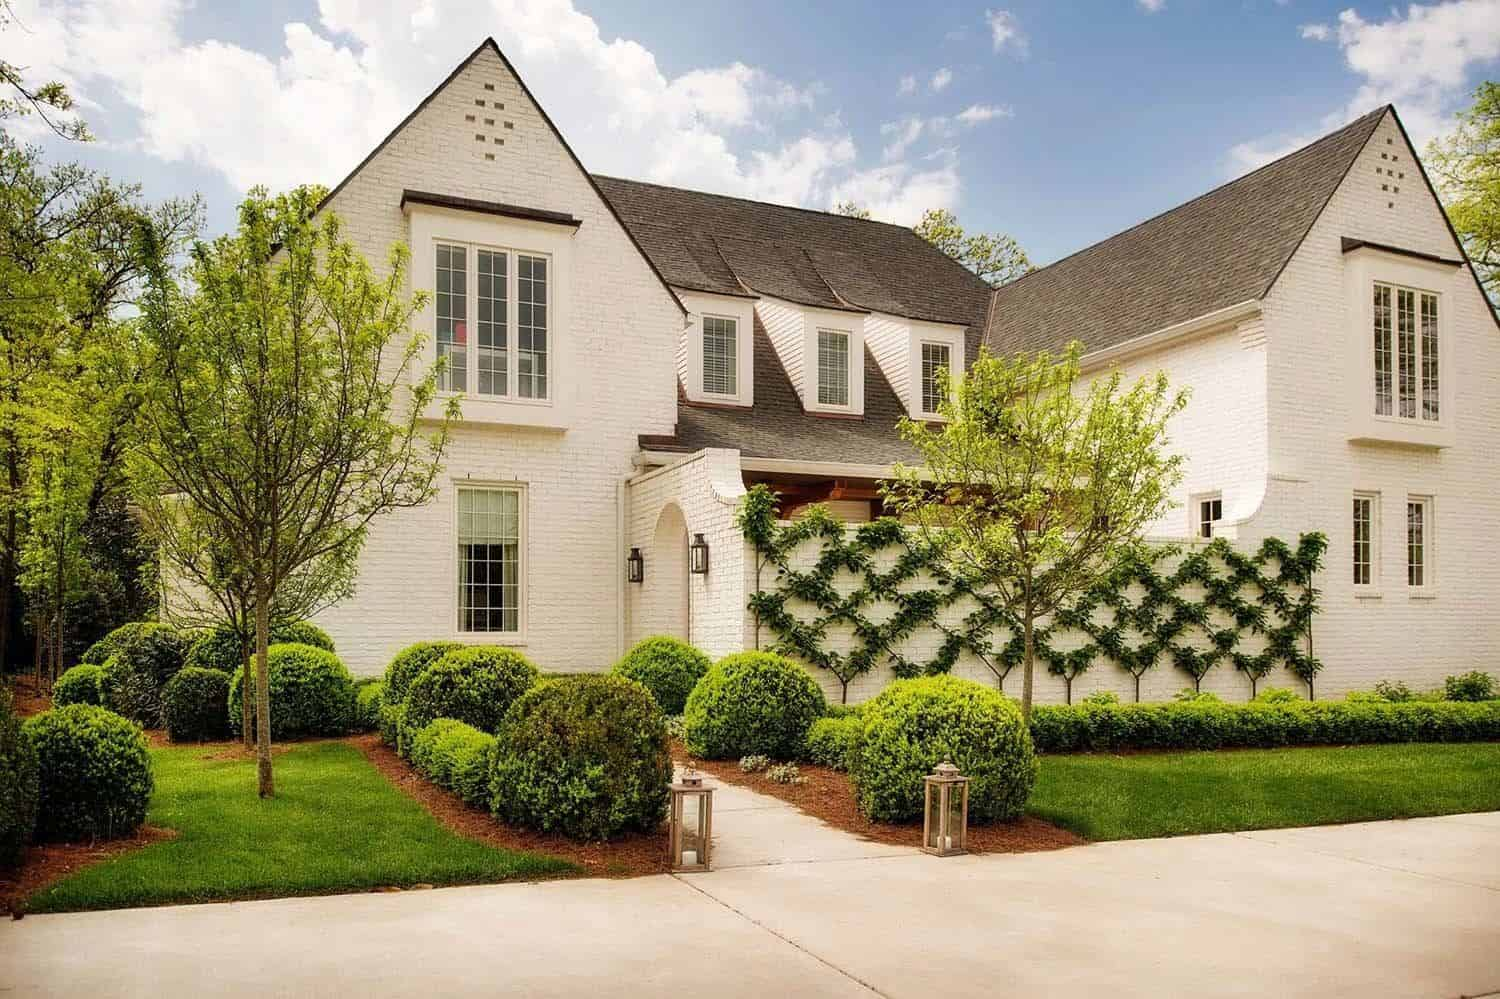 Charming English Country House In Nashville With A Modern